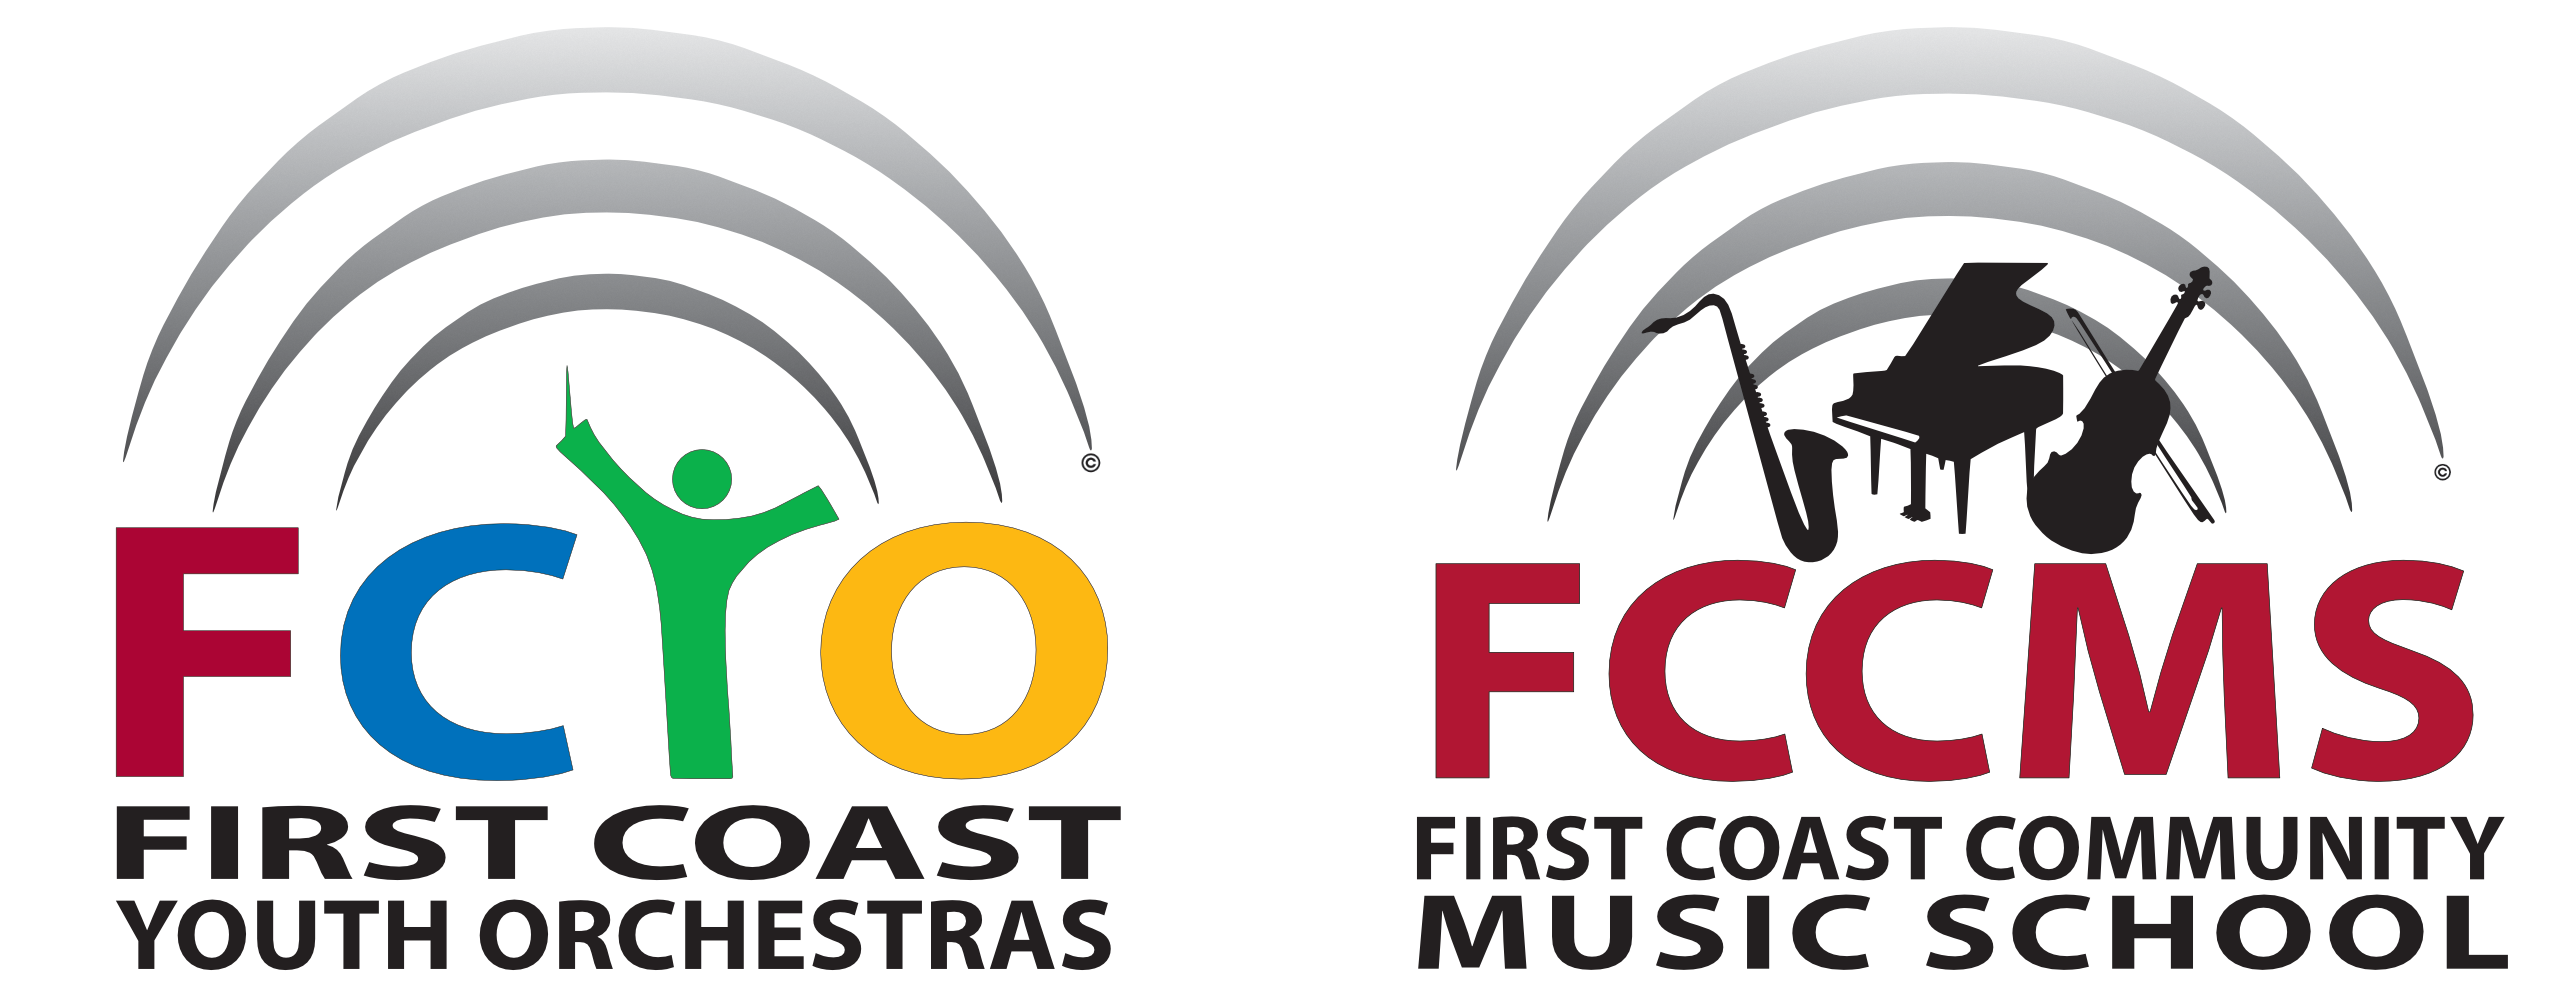 Logo for First Coast Youth Orchestras